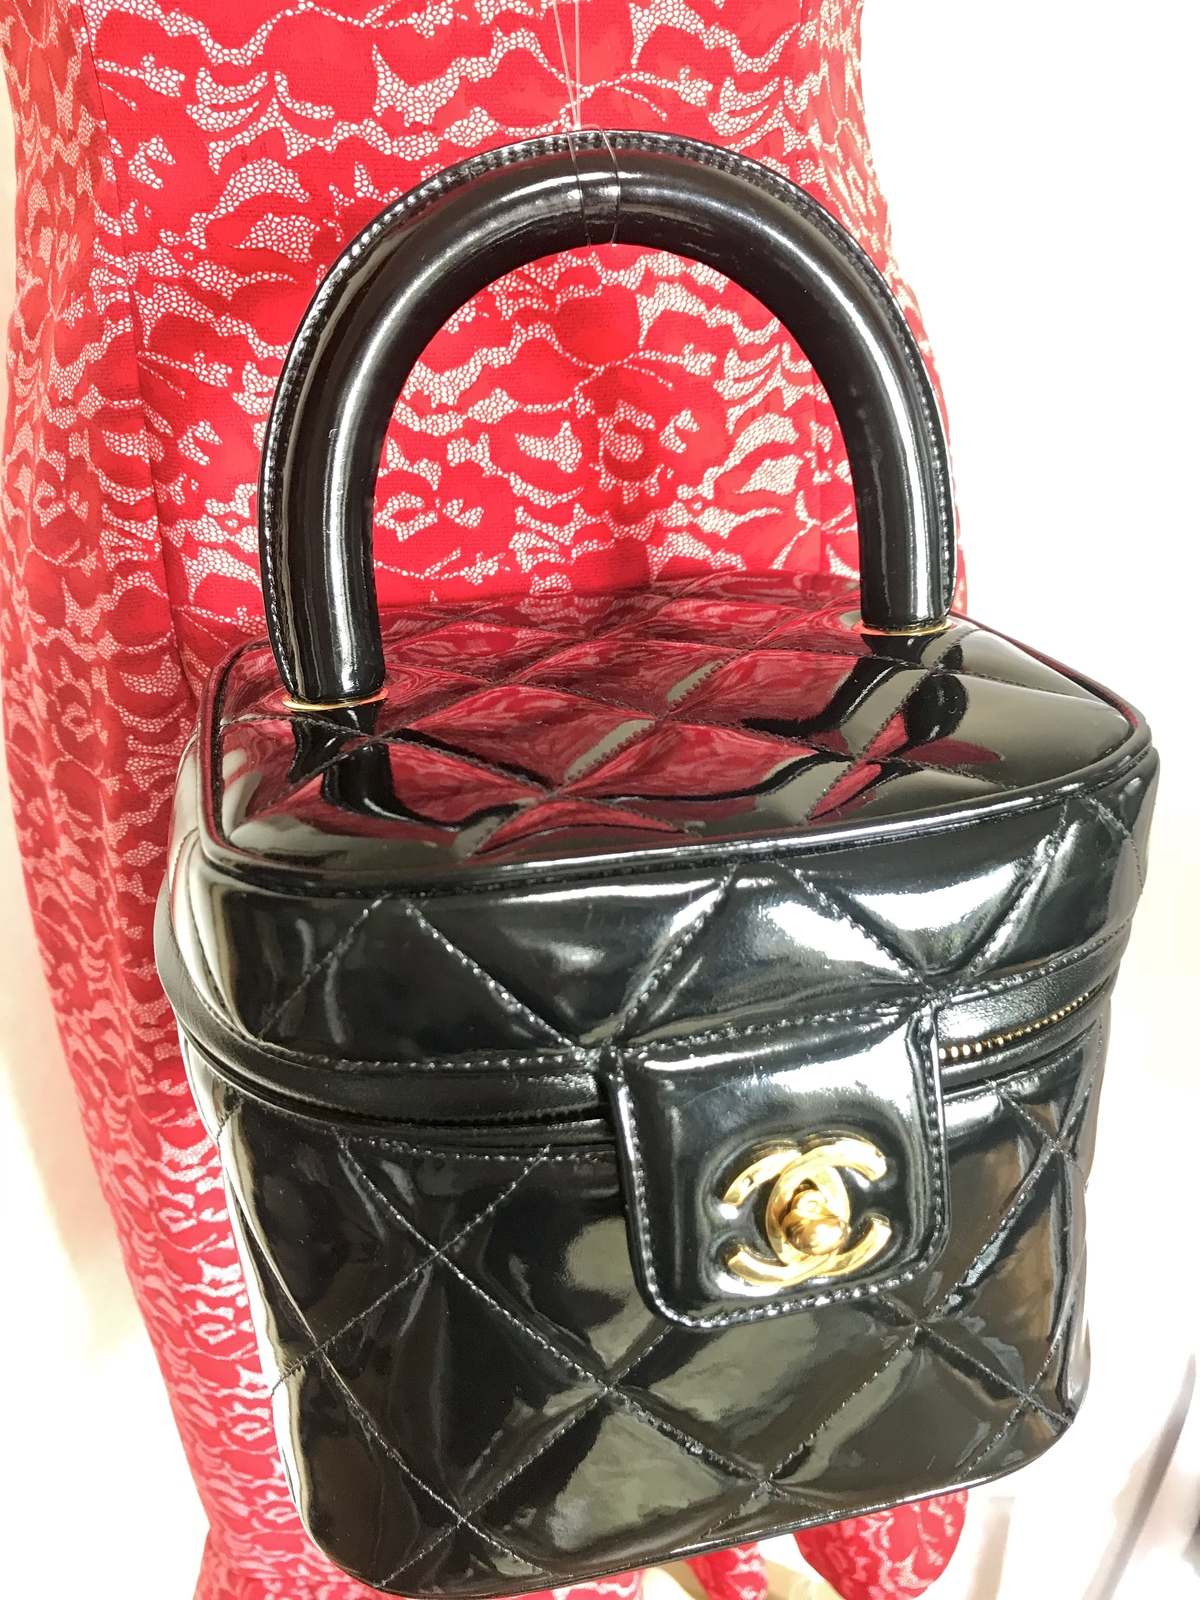 9dd9da70988a 1bfbba9a 6018 4d83 bf71 7aa7ce79f30f. 1bfbba9a 6018 4d83 bf71 7aa7ce79f30f.  Previous. Vintage CHANEL black patent enamel quilted leather vanity bag ...